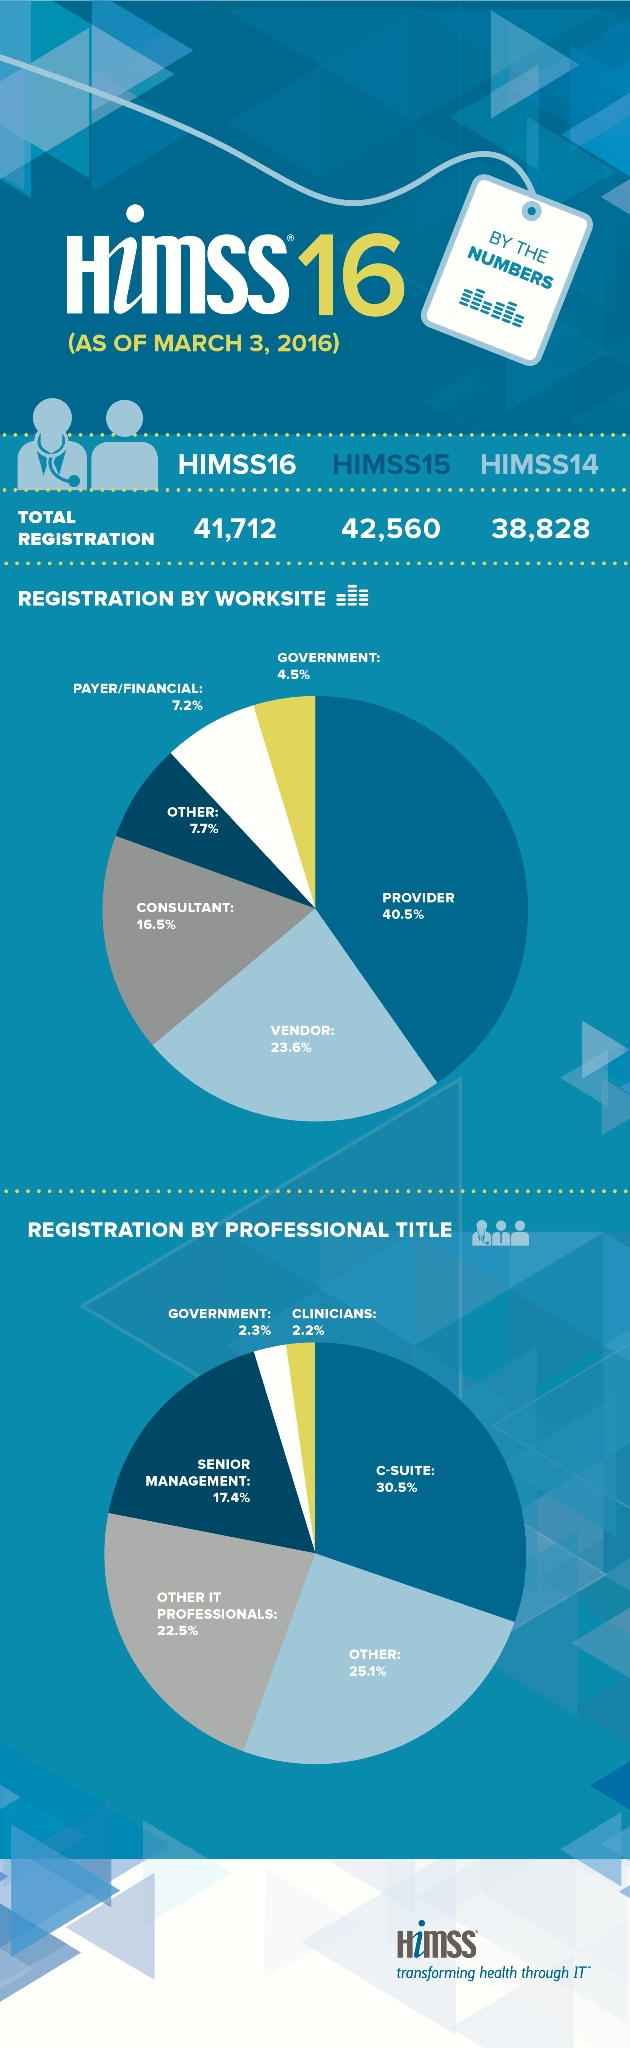 HIMSS 2016 Registrations by Title and Worksite